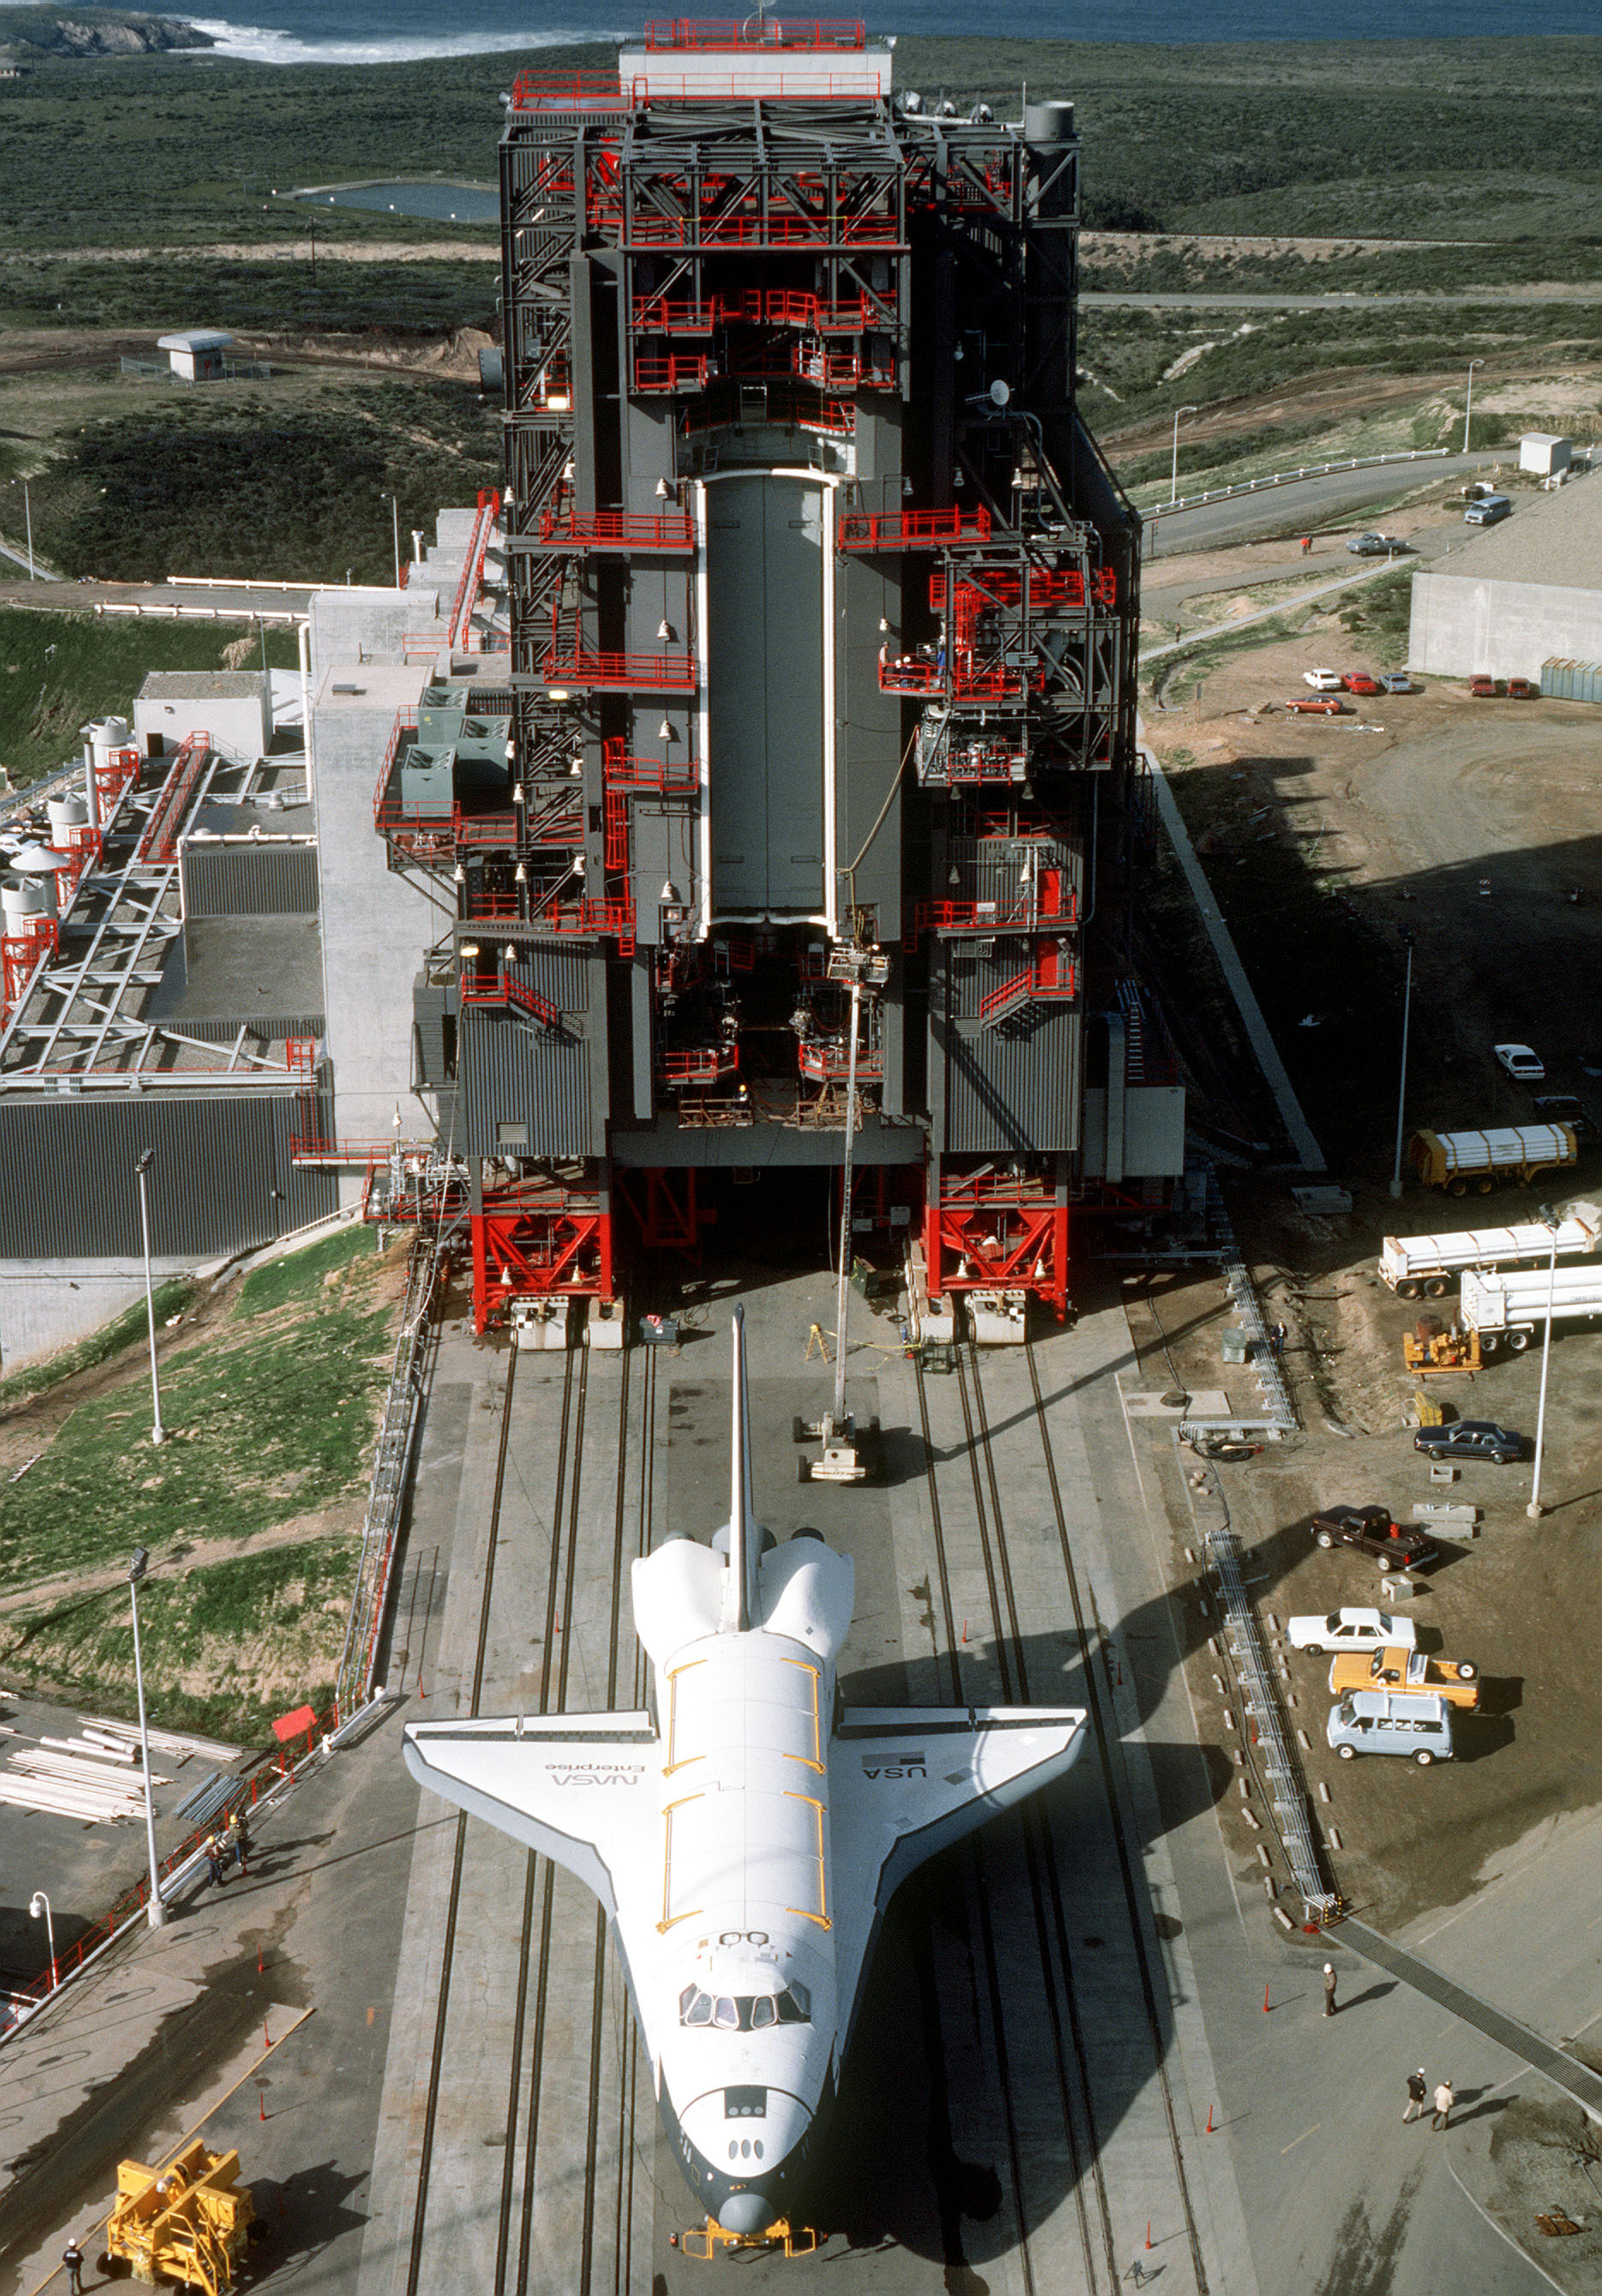 space shuttle at vandenberg - photo #16